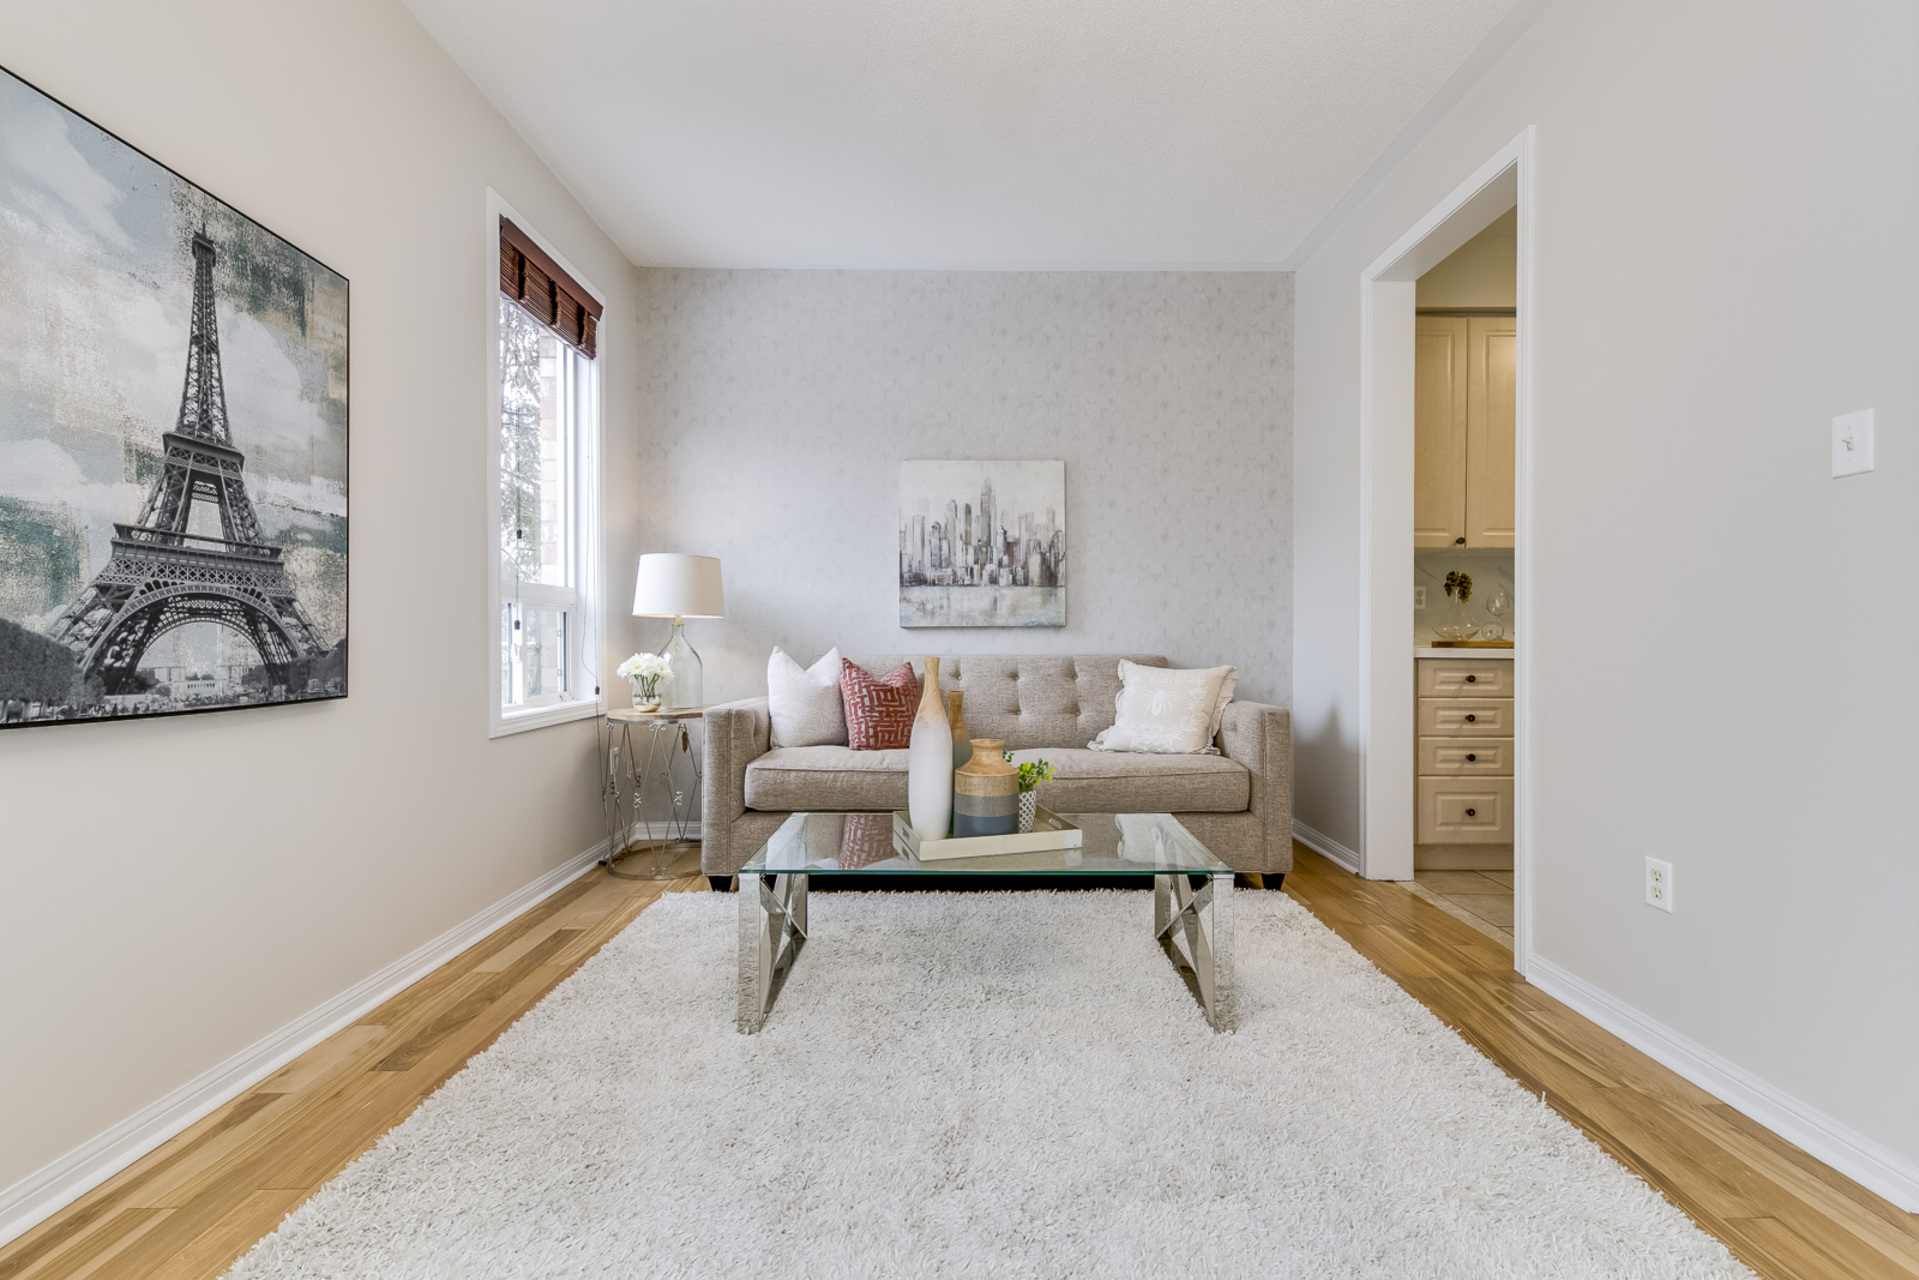 Family Room - 1342 Weir Chase, Mississauga - Elite3 & Team at 1342 Weir Chase, East Credit, Mississauga